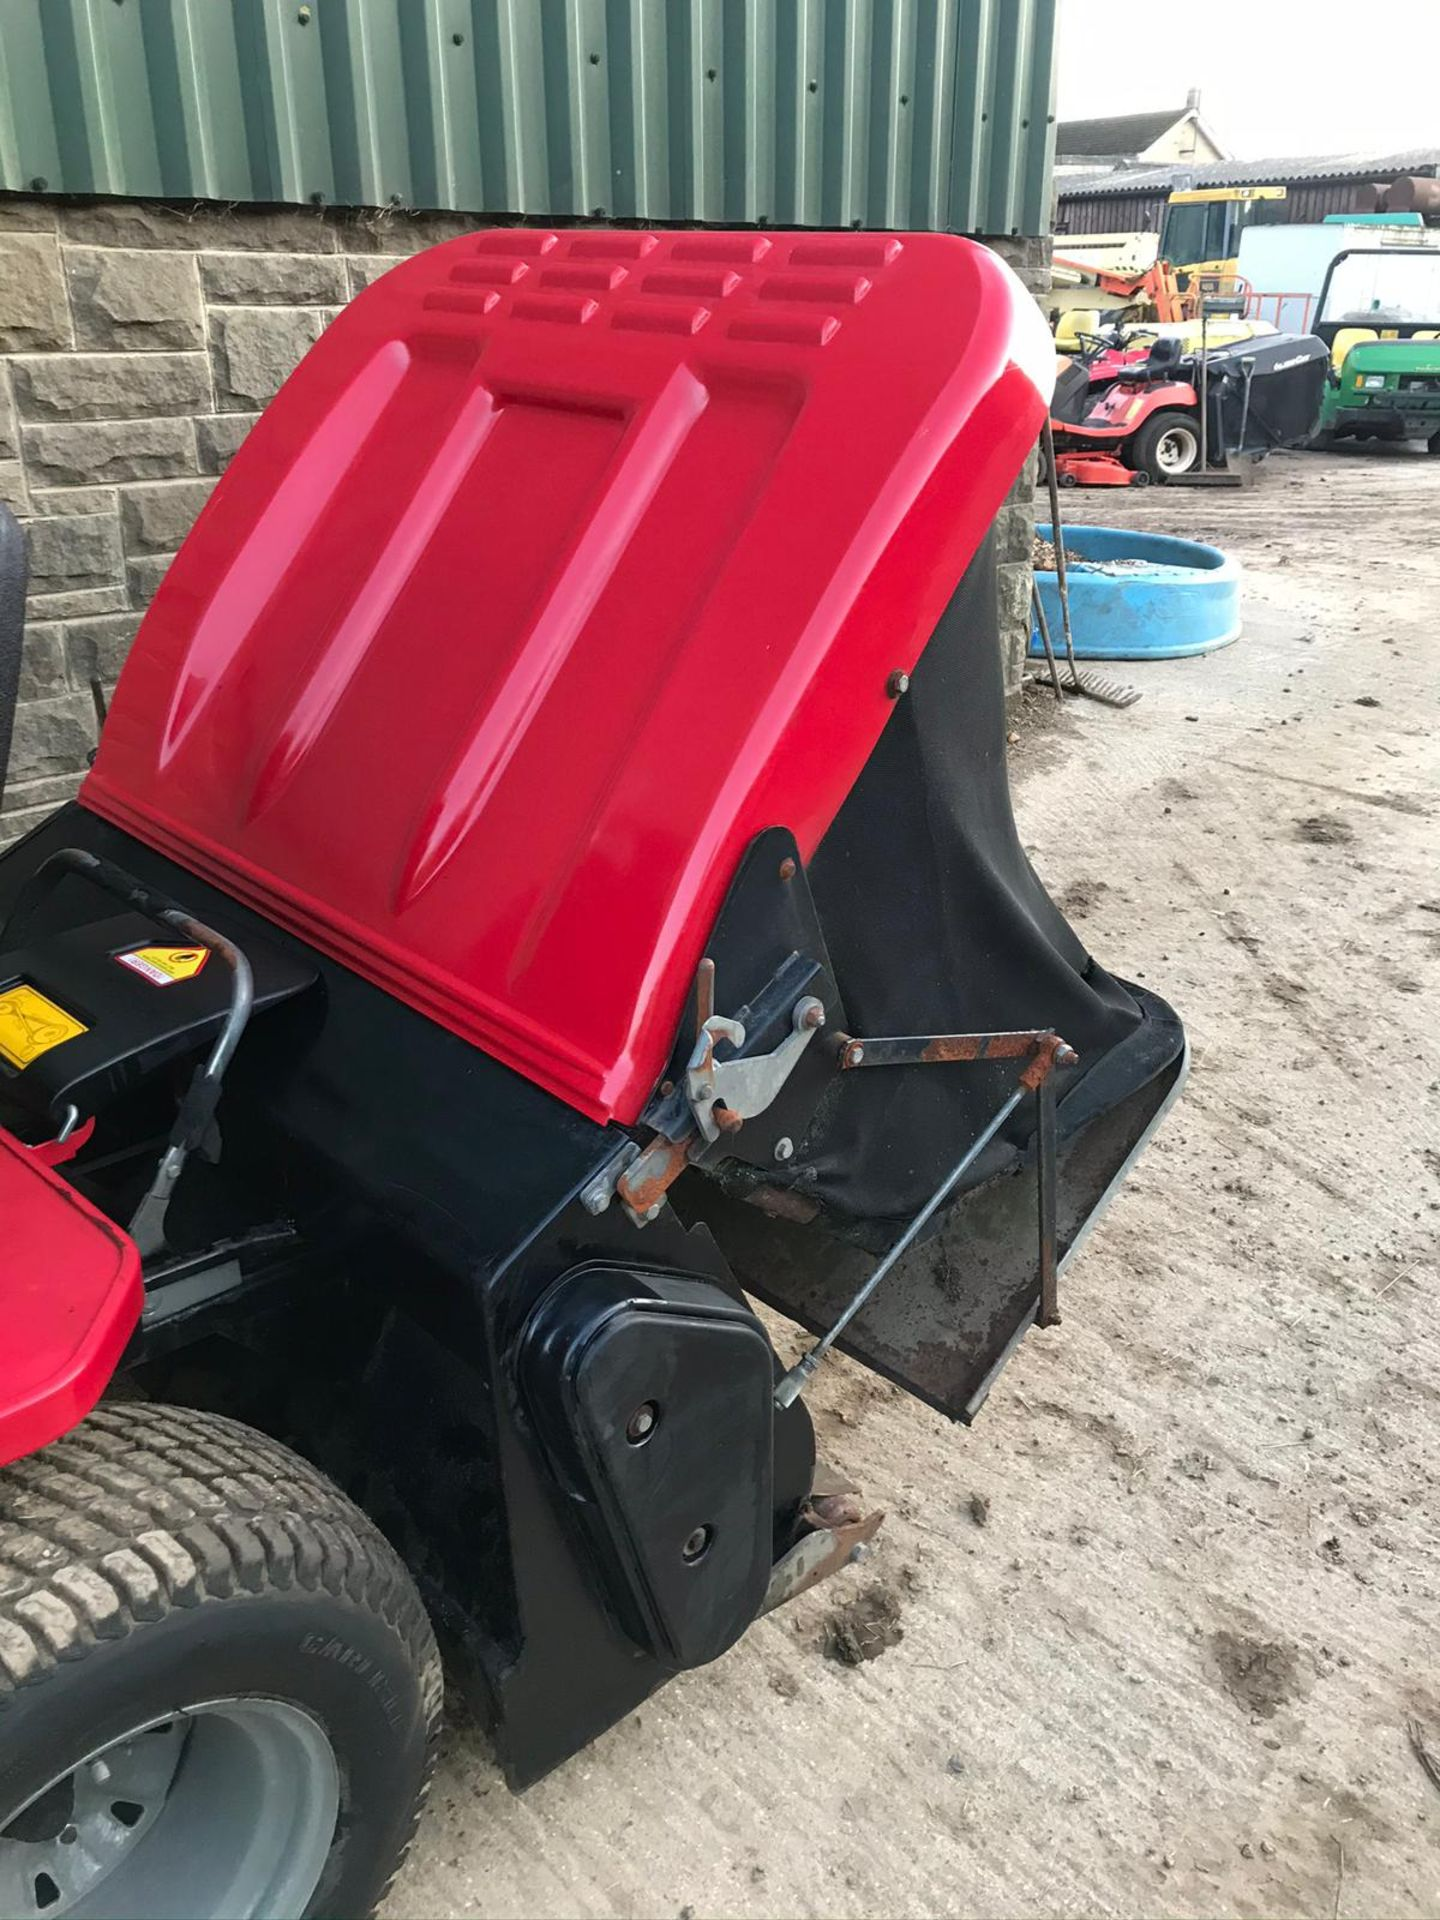 COUNTAX K1850 RIDE ON LAWN MOWER, RUNS, DRIVES AND CUTS, CLEAN MACHINE *NO VAT* - Image 2 of 5